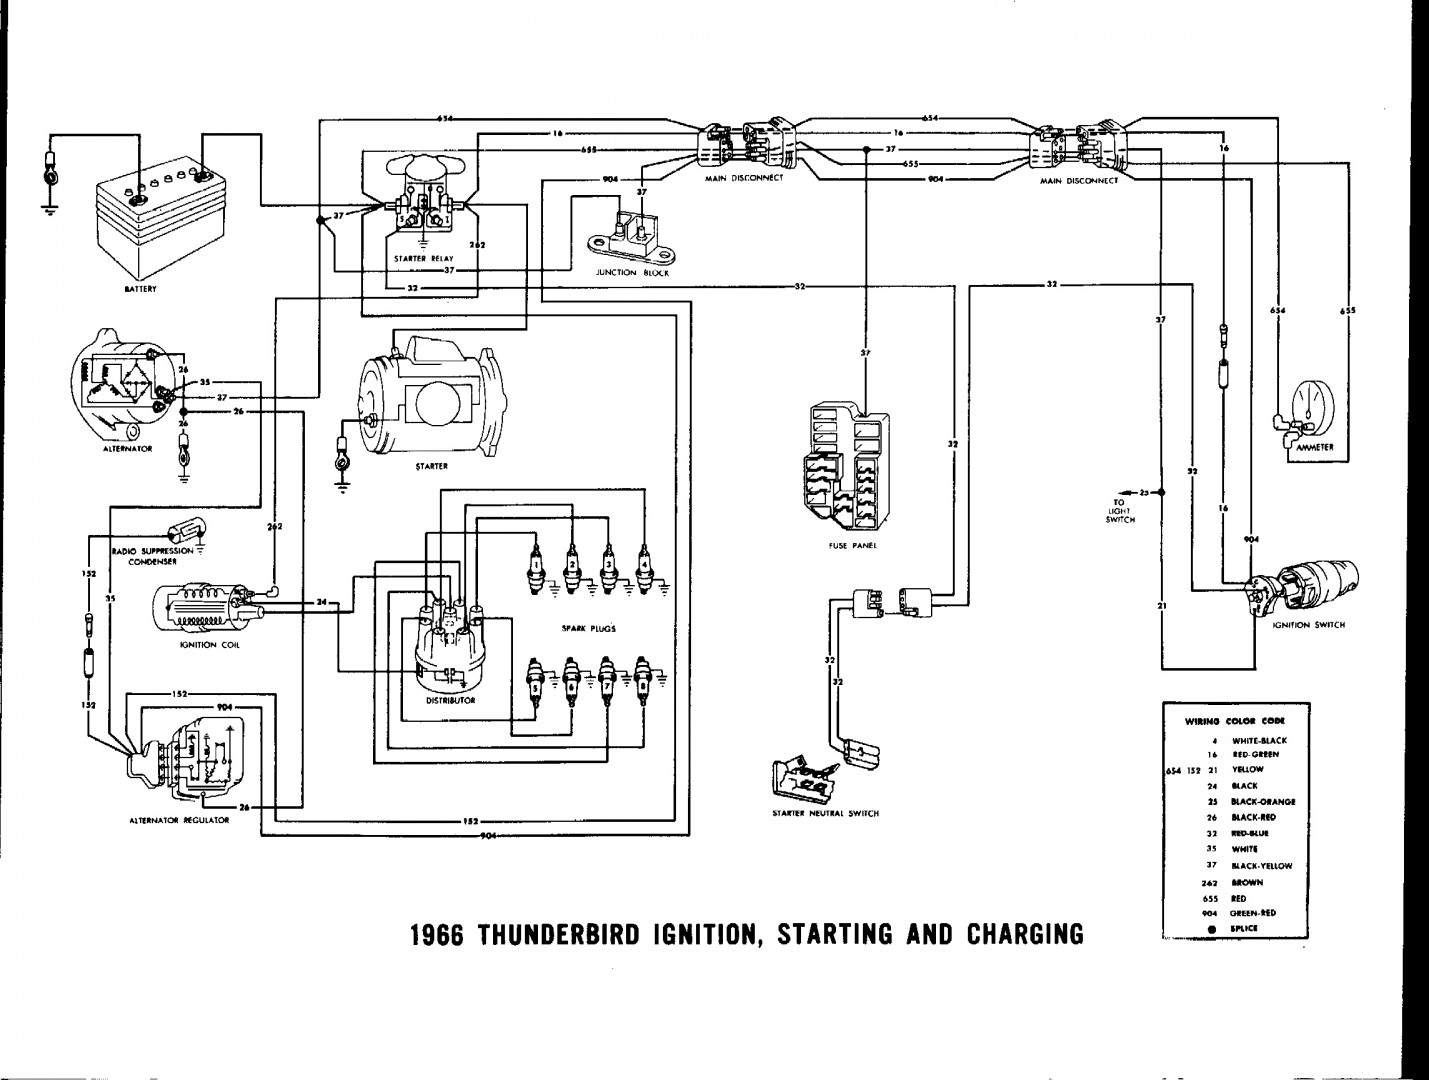 wire diagram for 1999 ford thunderbird wiring diagram for 1964 ford thunderbird